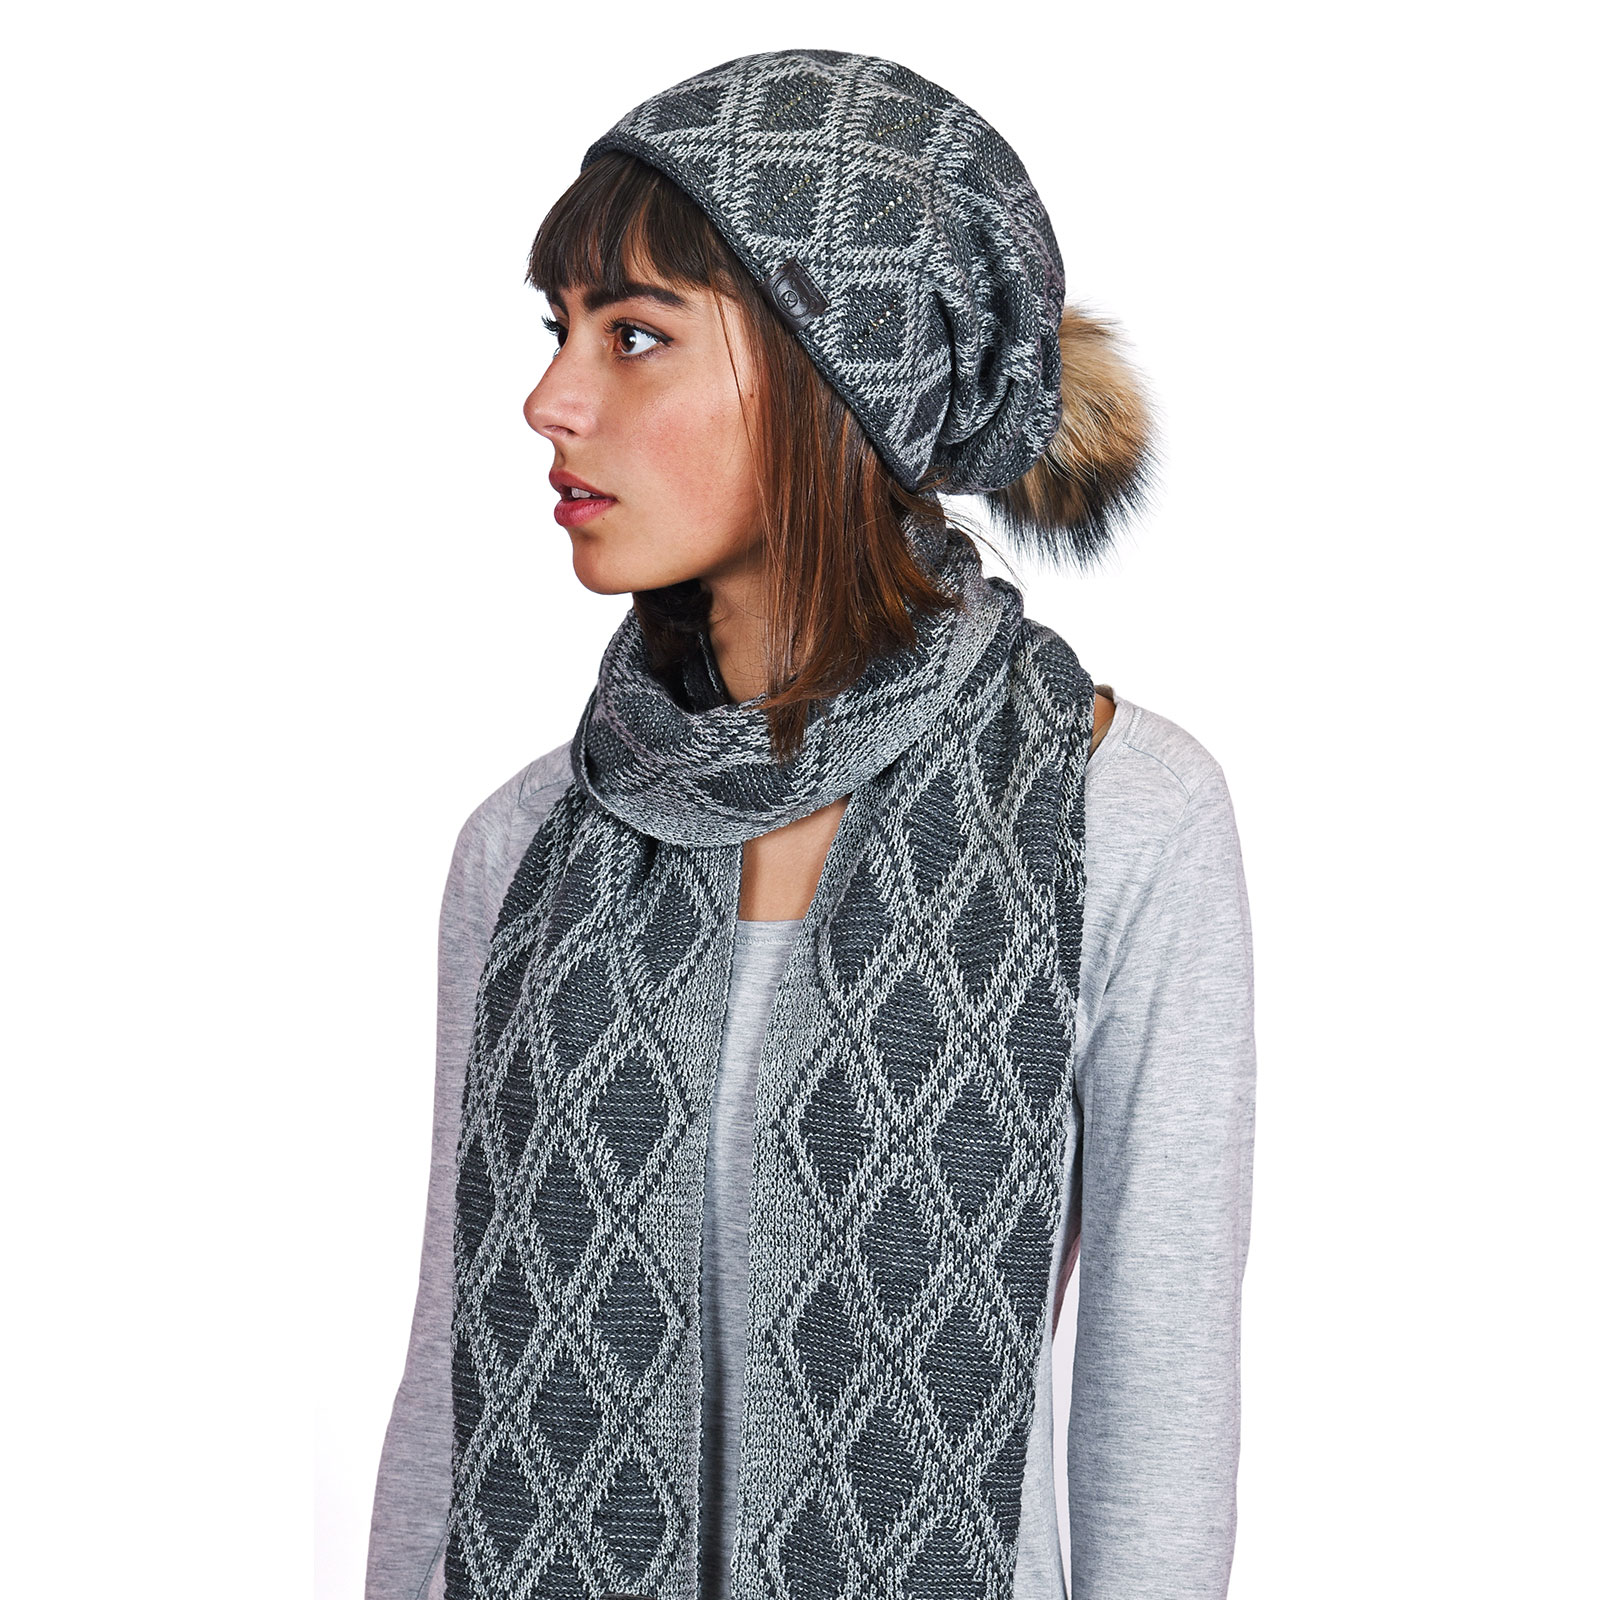 AT-04586-VF16-P-echarpe-et-bonnet-gris-anthracite